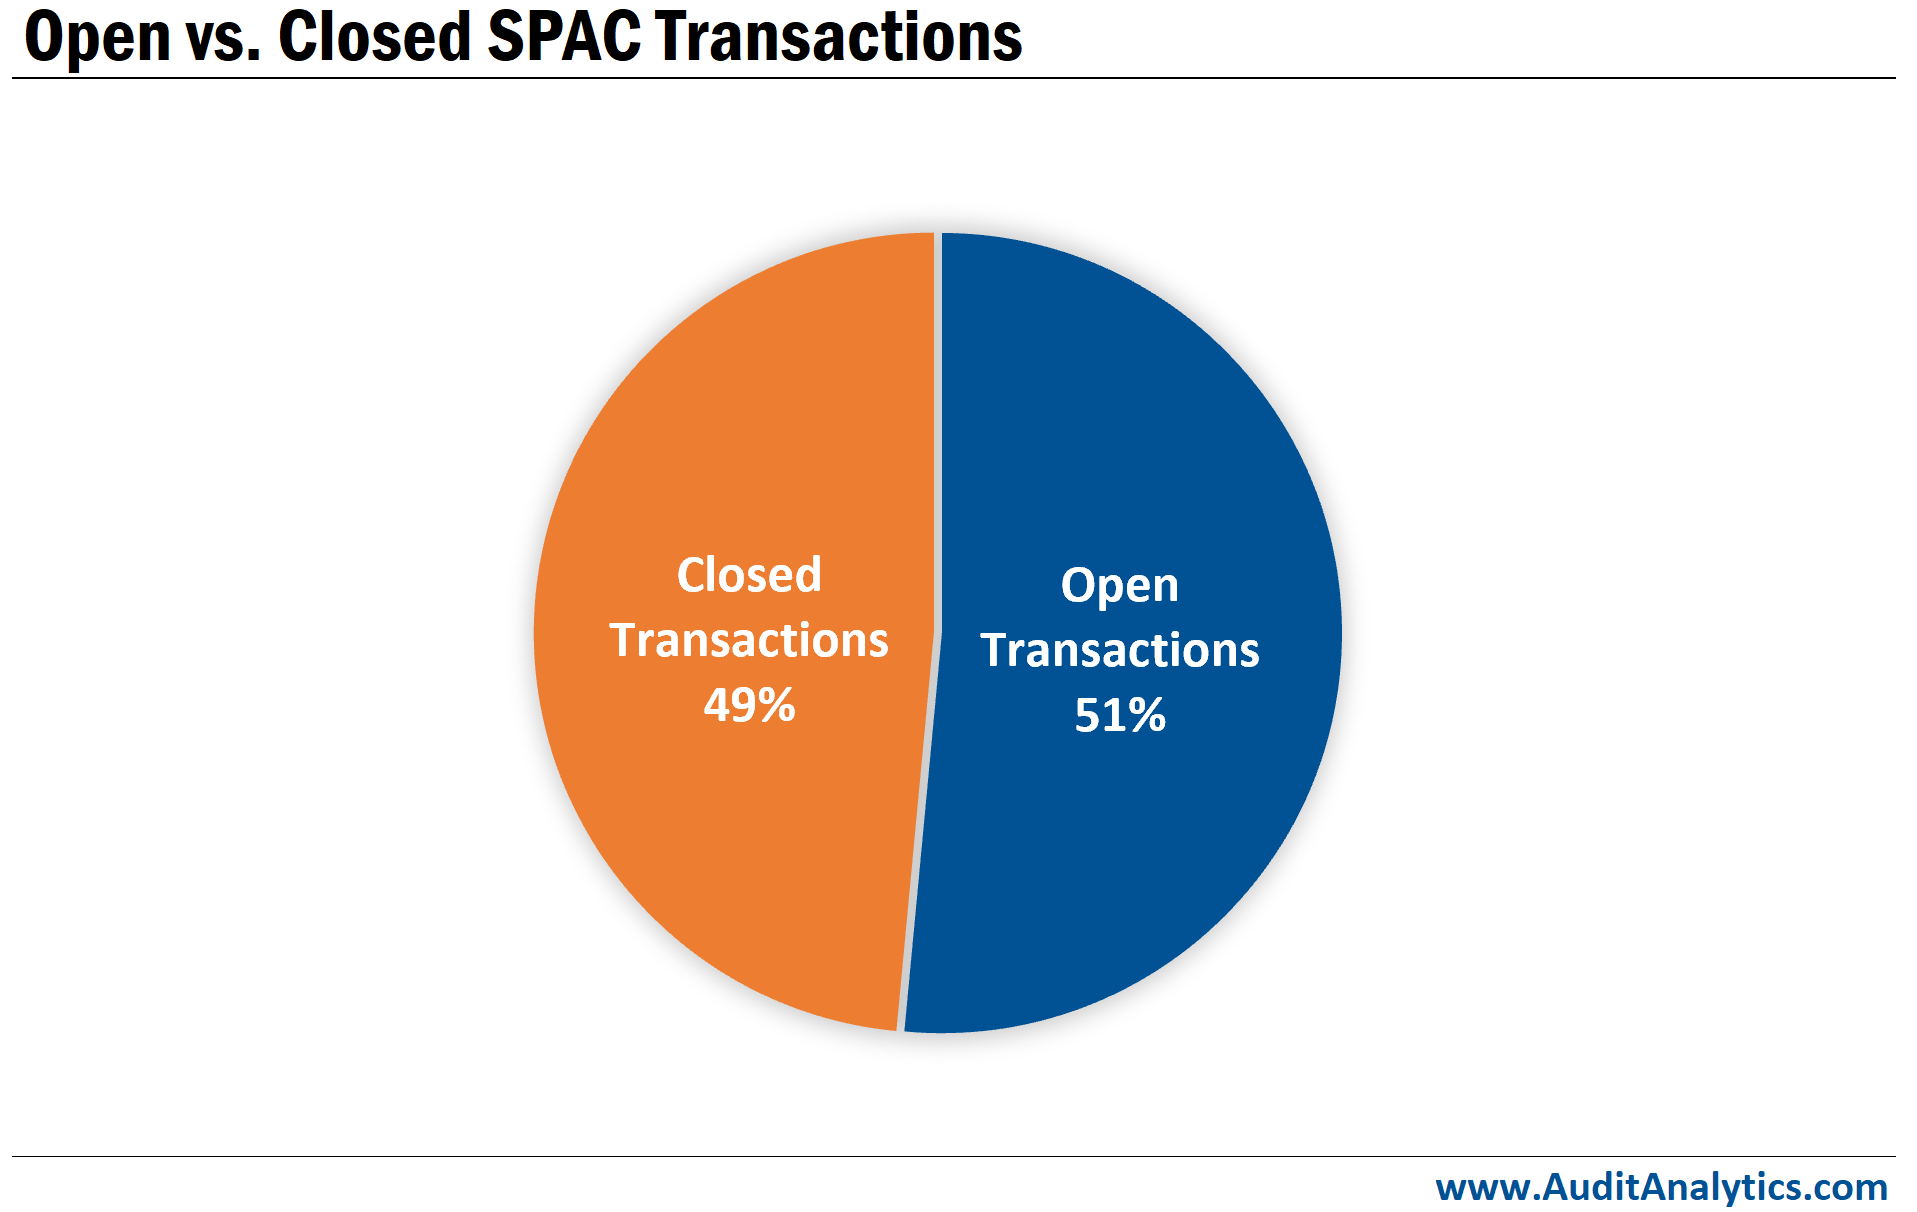 Open vs. closed SPAC transactions